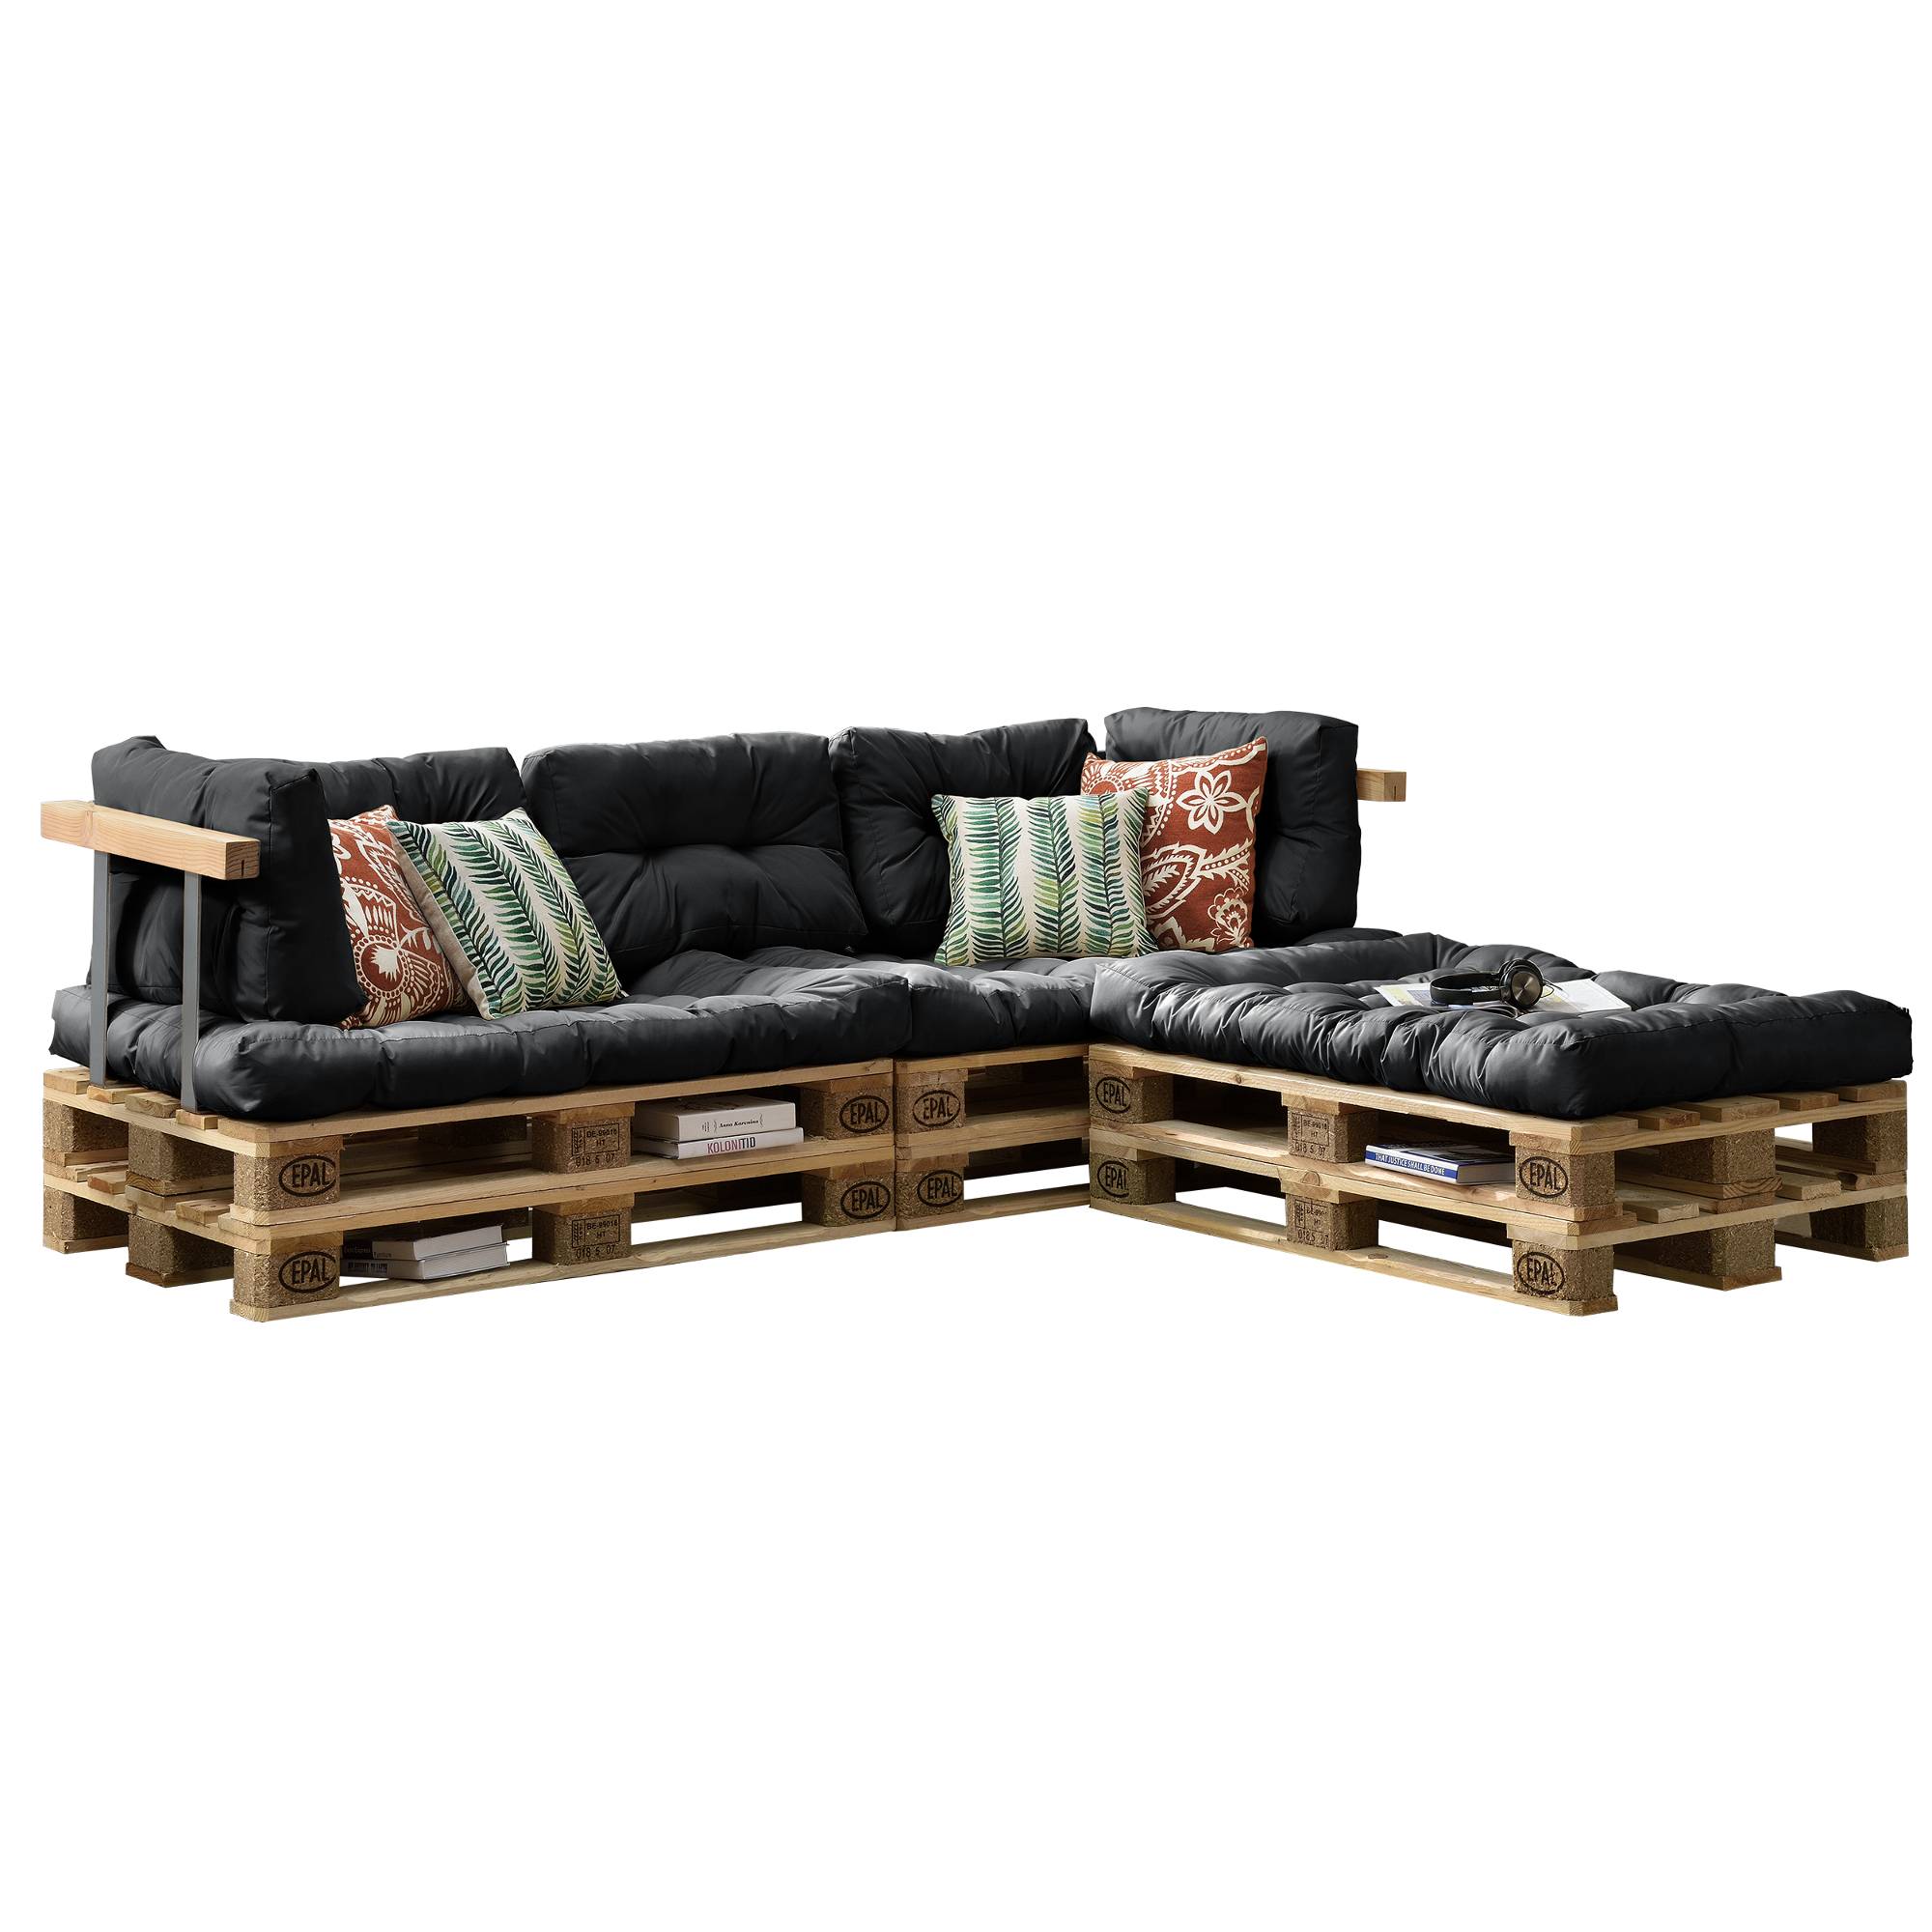 euro paletten sofa 3x sitz 5x r ckenkissen grau kissen auflage ebay. Black Bedroom Furniture Sets. Home Design Ideas